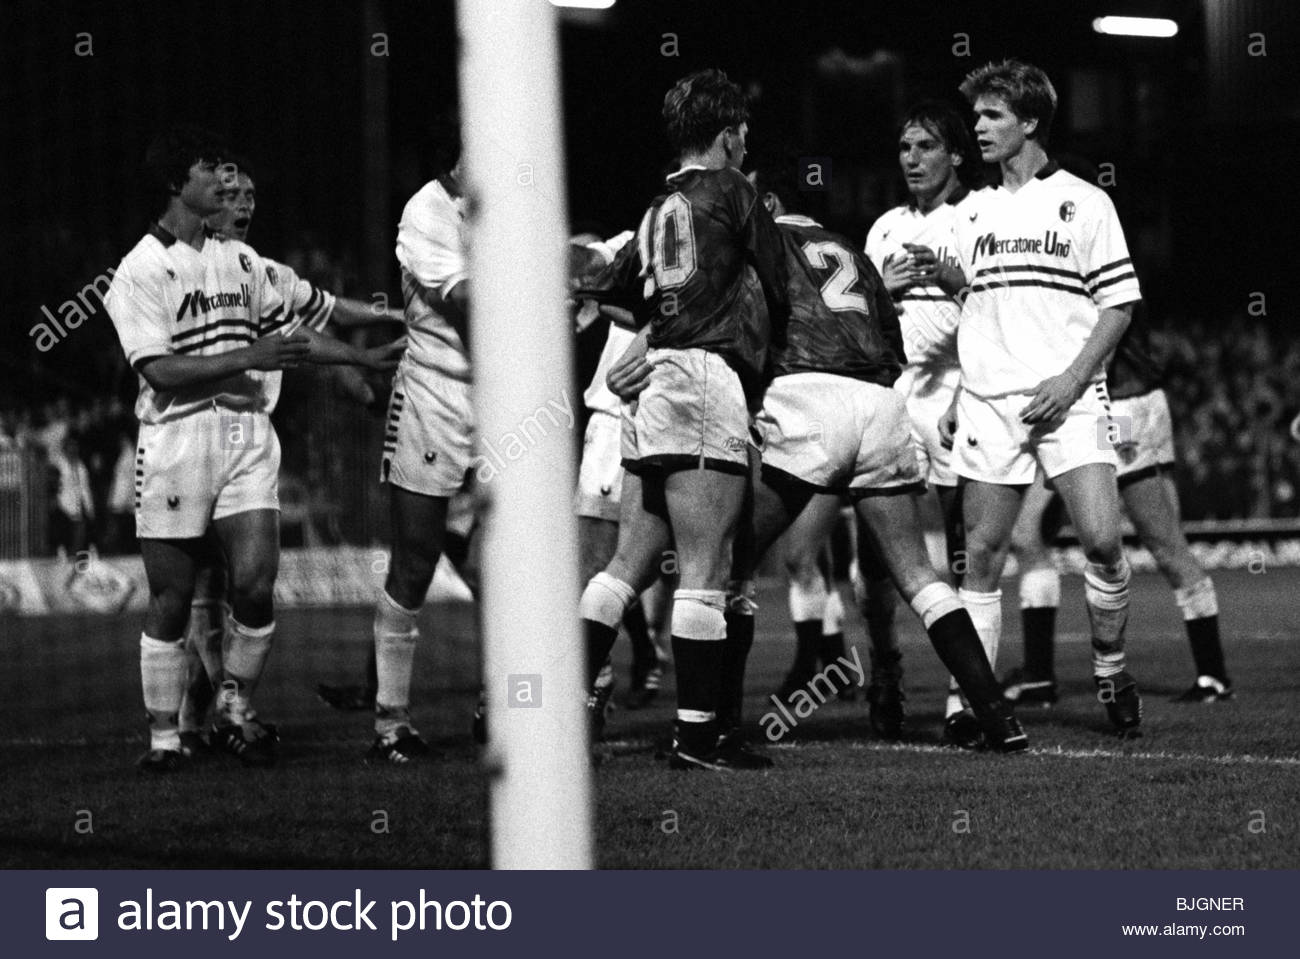 24/10/90 UEFA CUP SECOND ROUND FIRST LEG HEARTS V BOLOGNA (3-1) TYNECASTLE - EDINBURGH A row breaks out between - Stock Image